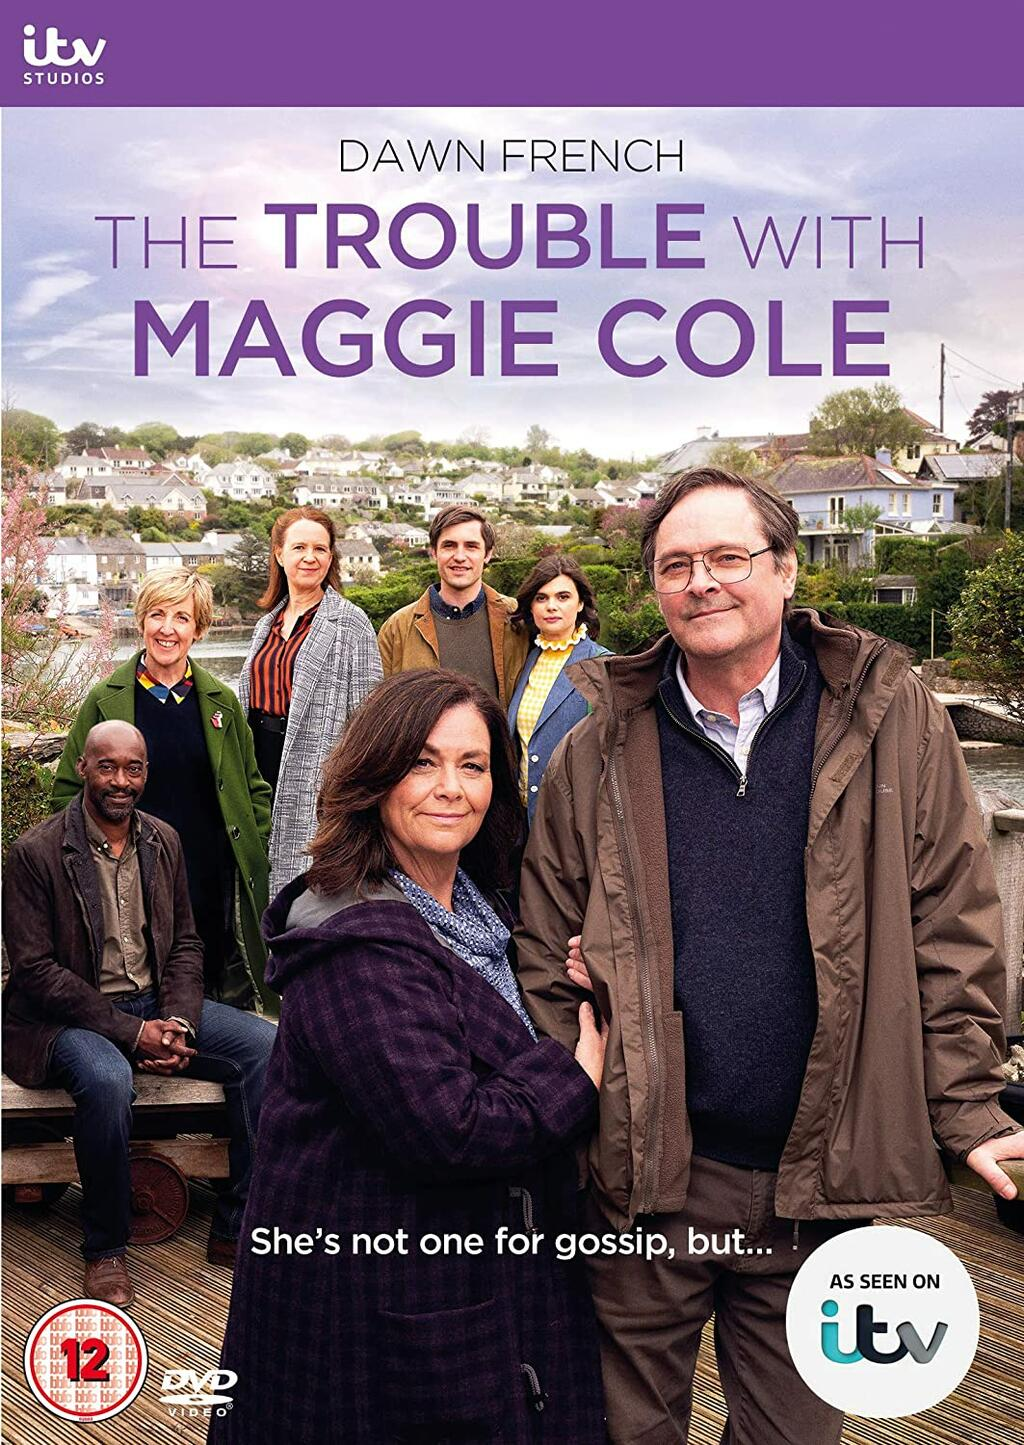 The Trouble with Maggie Cole